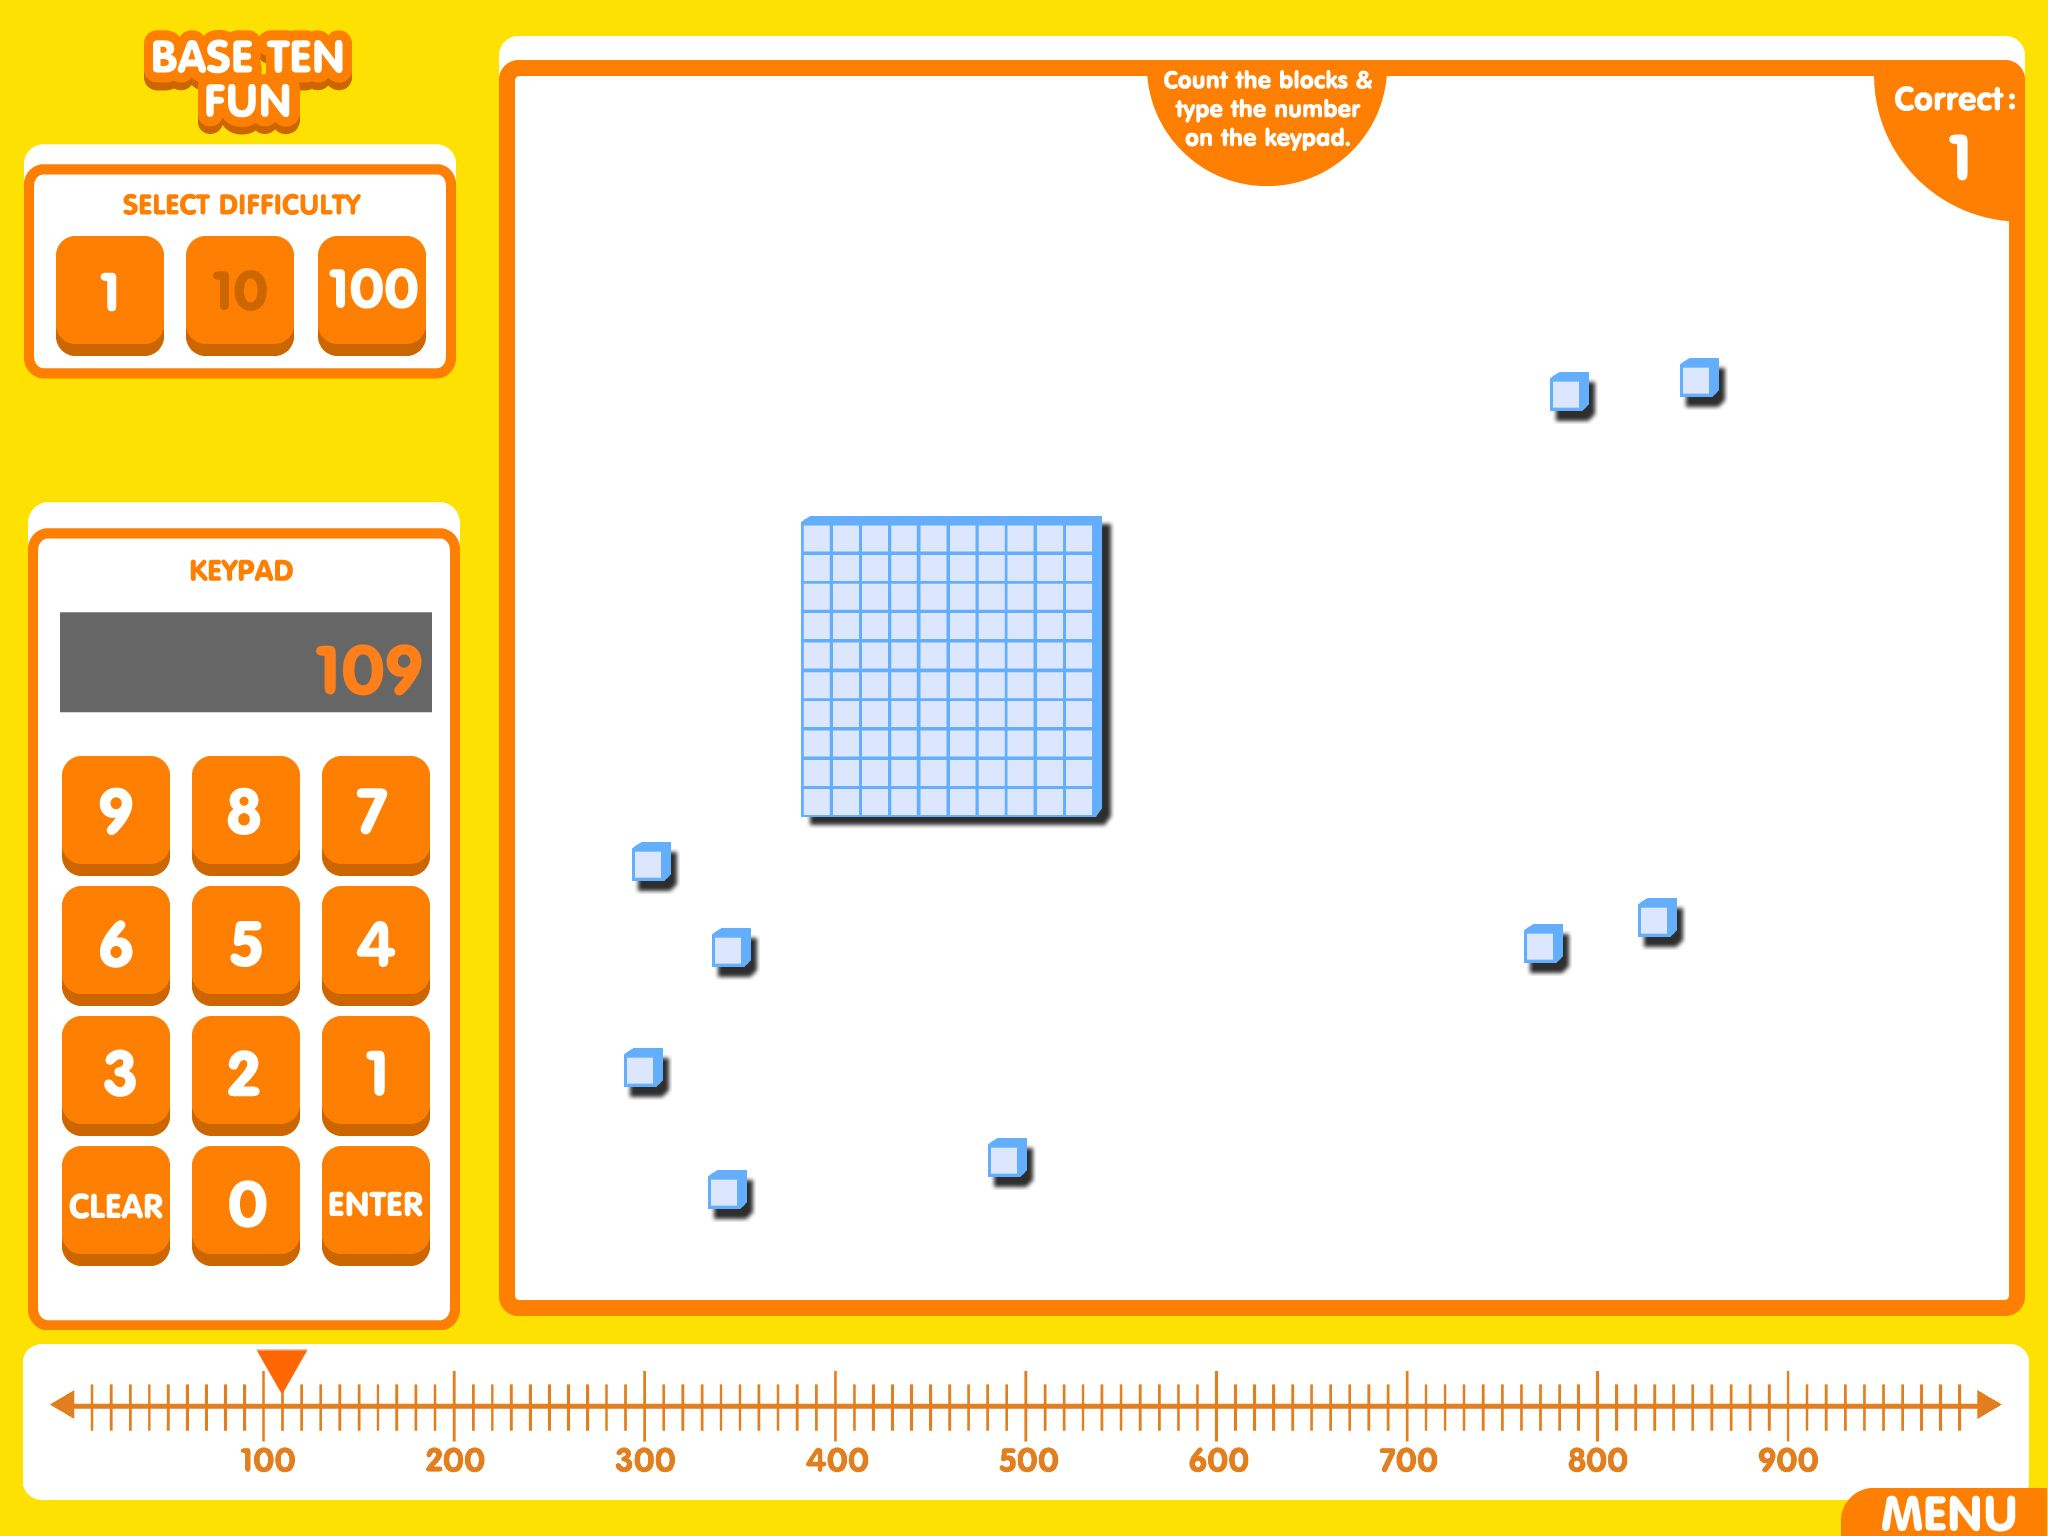 Base Ten Fun A Simple App Used For Reinforcing Place